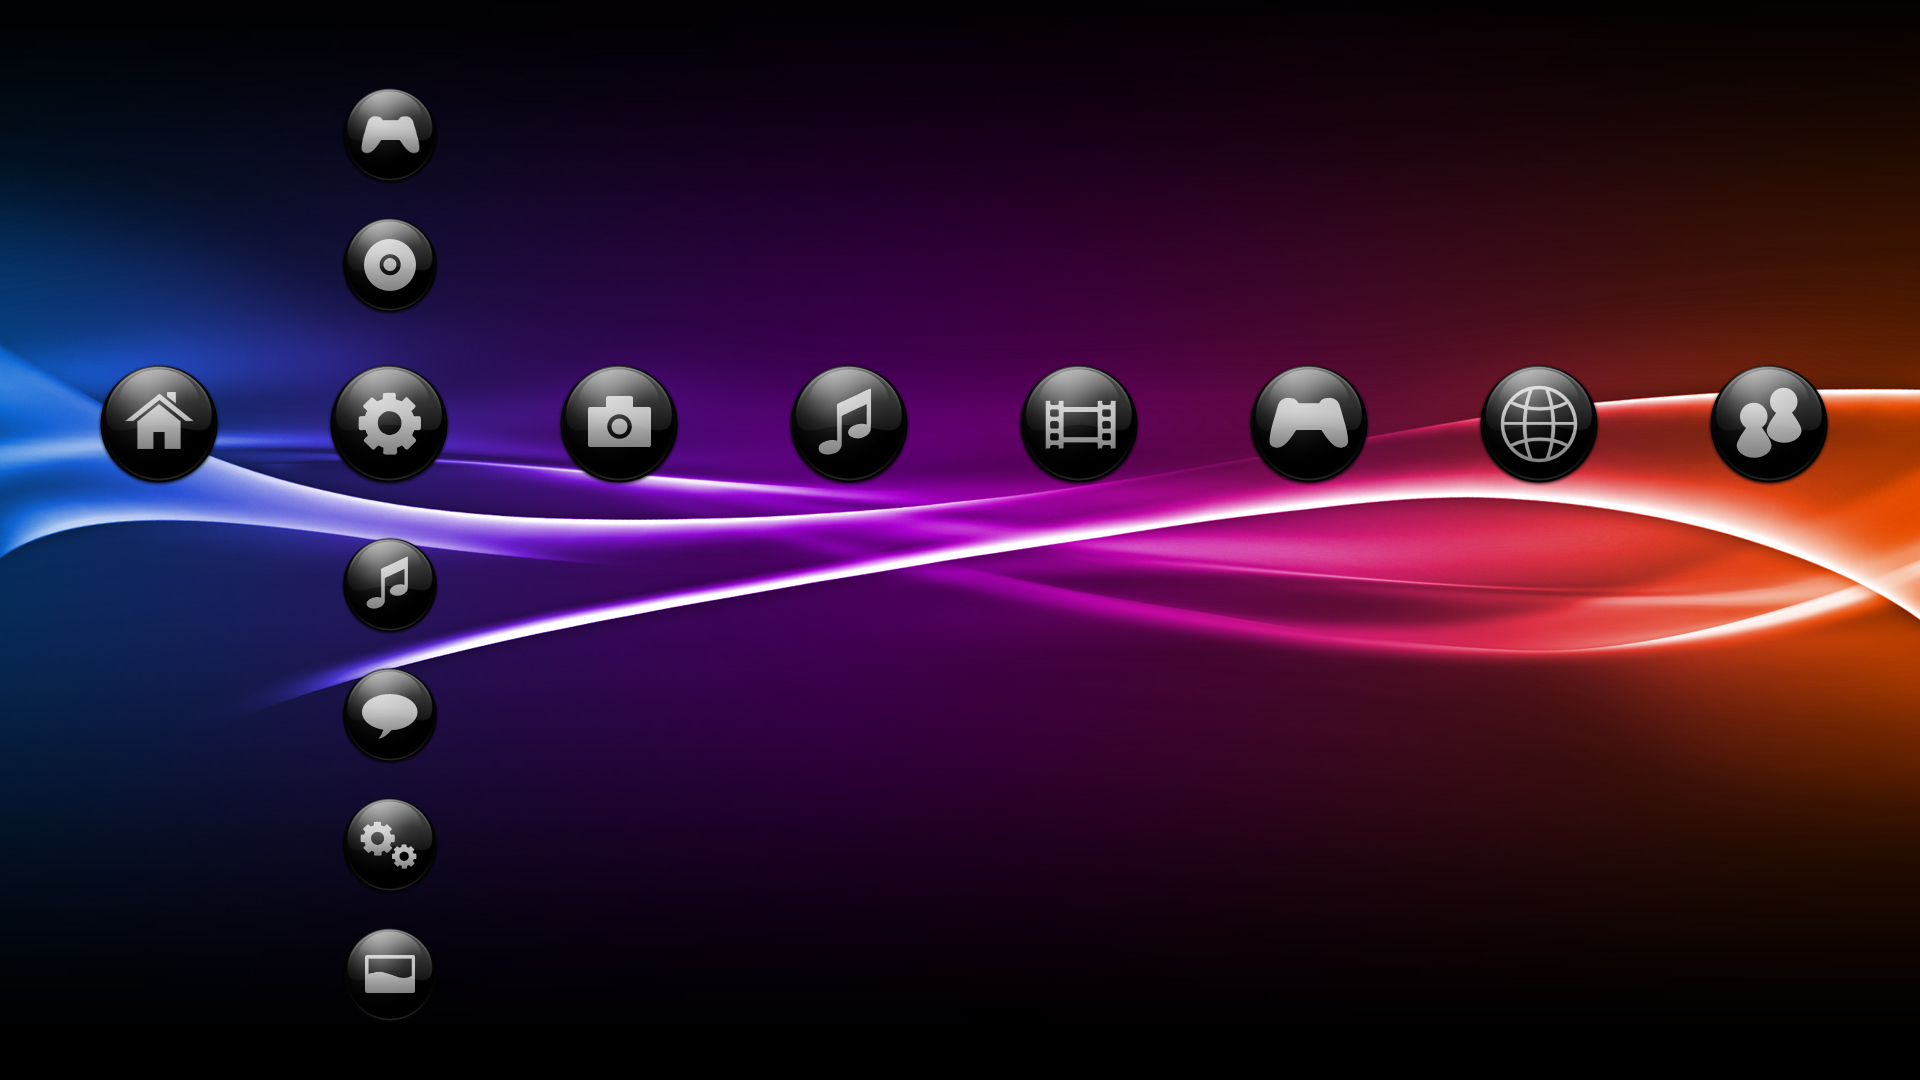 Ps3 Wallpaper Themes